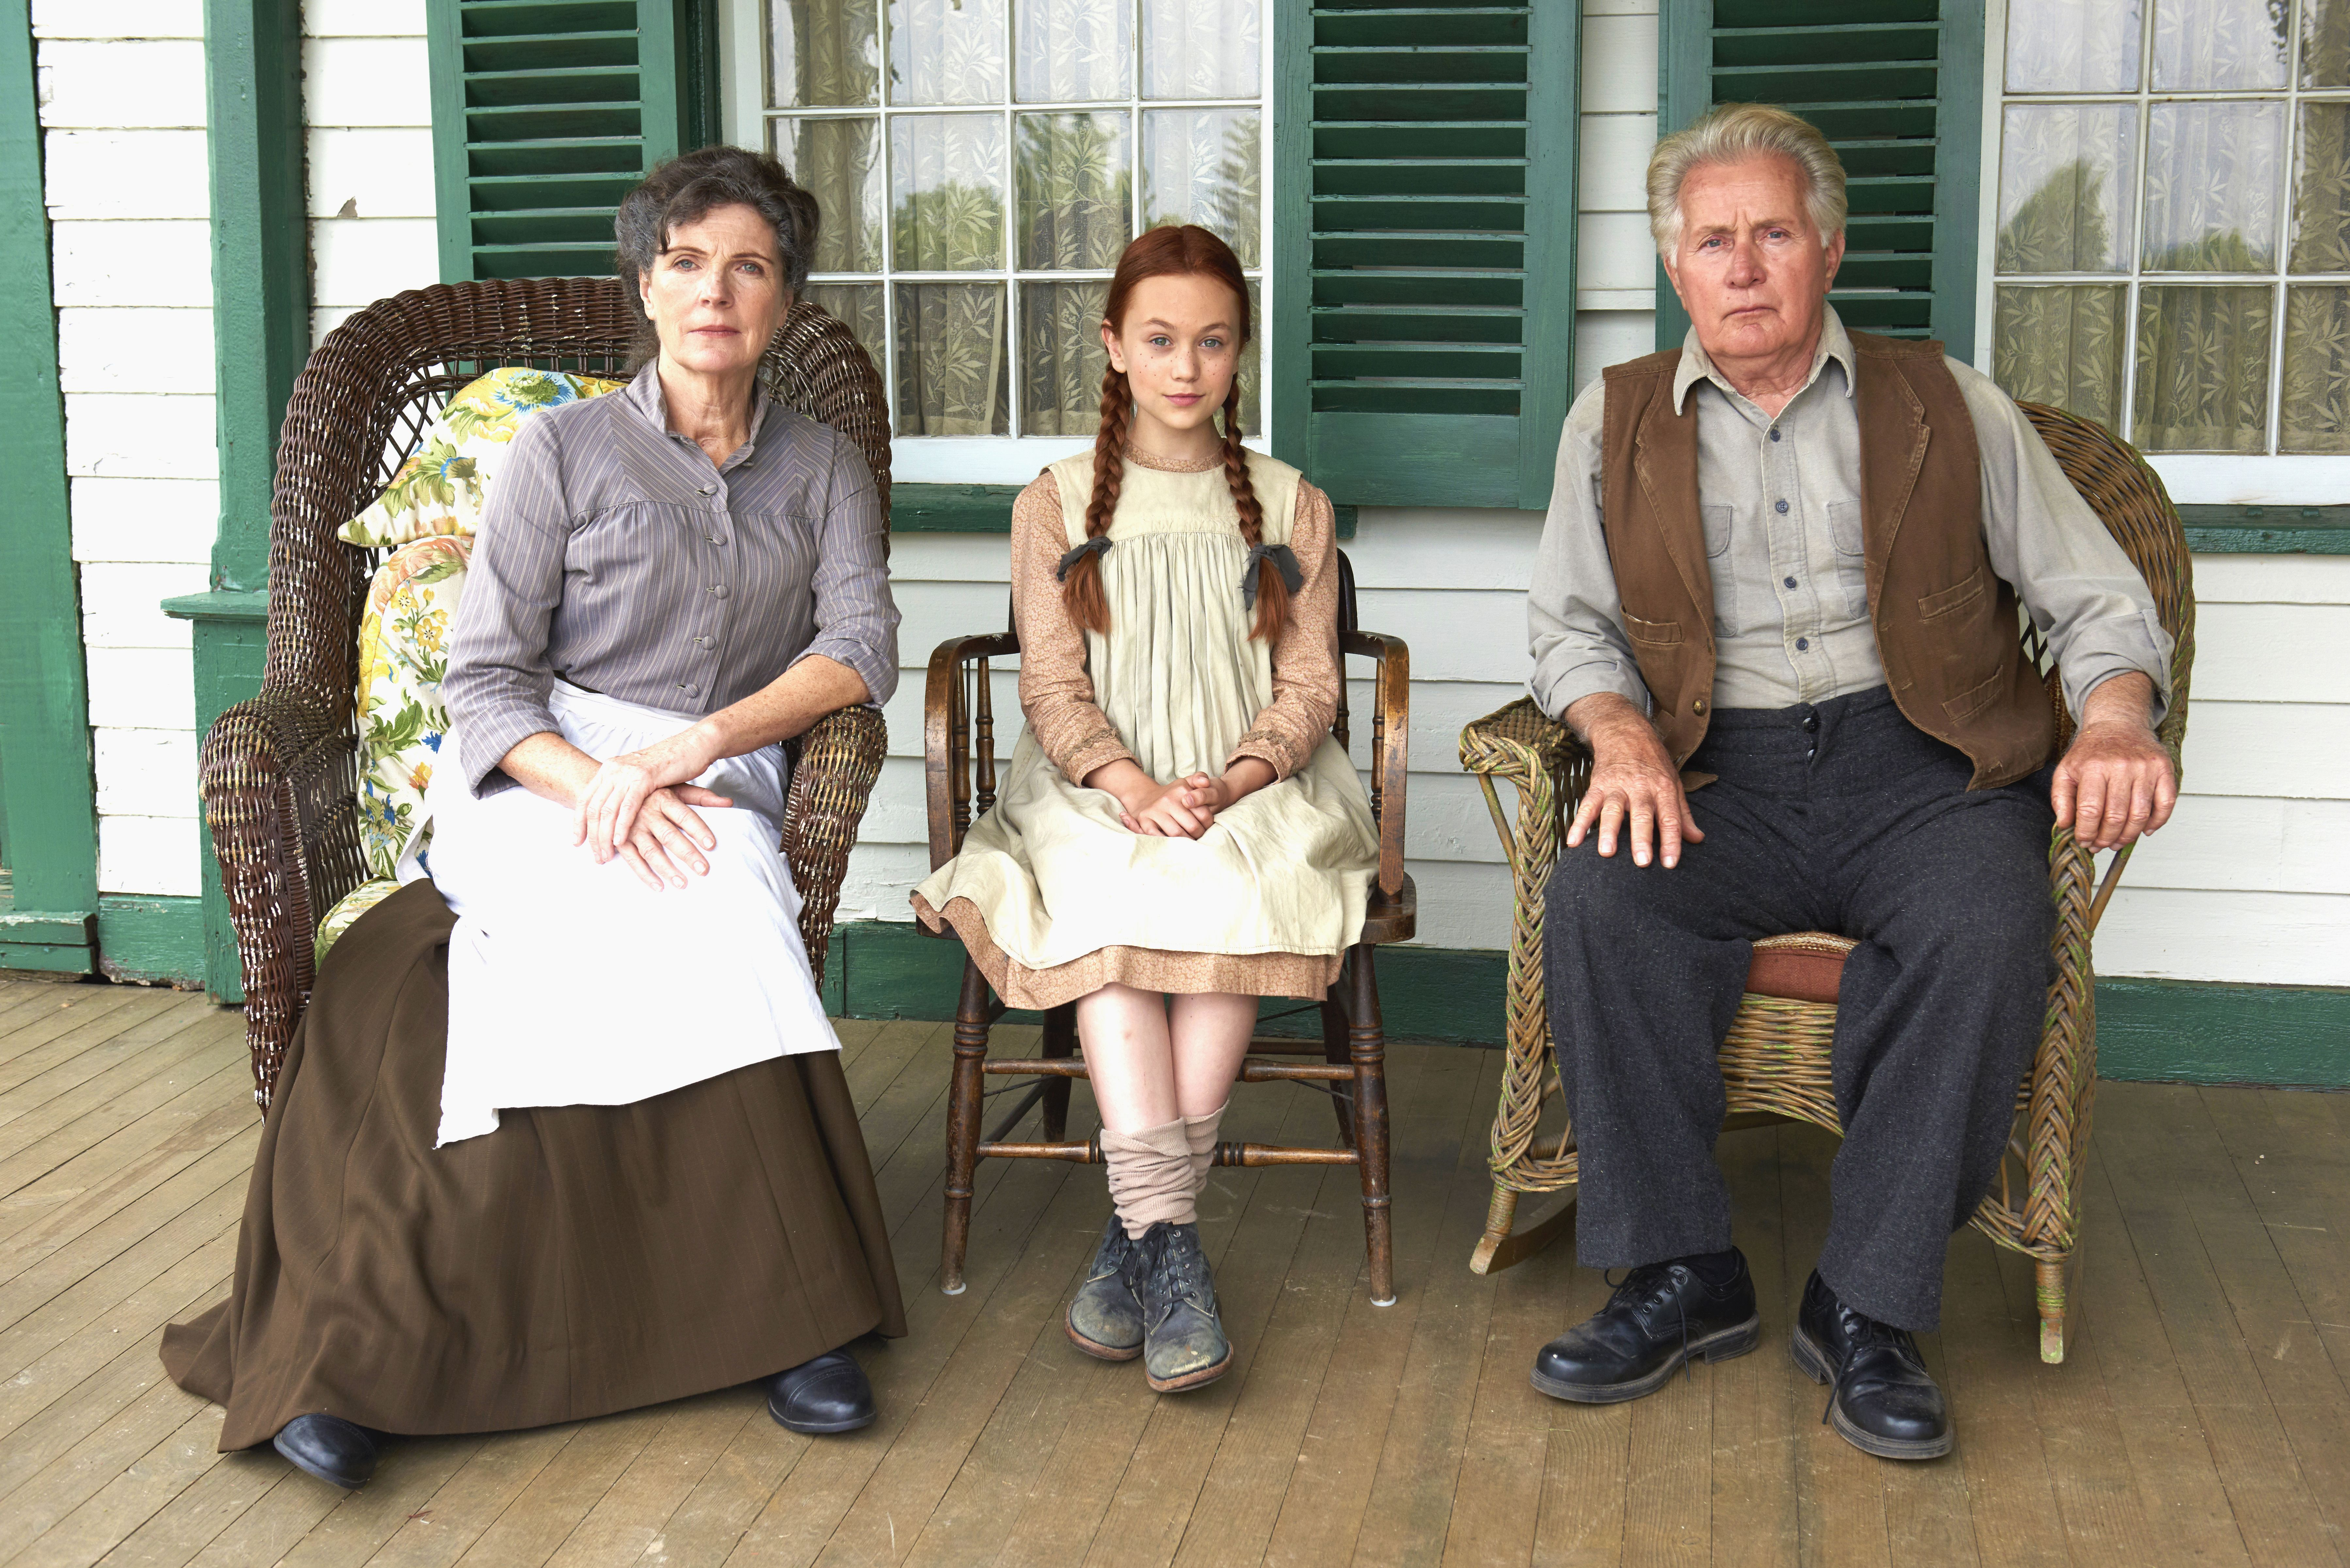 There S A New Anne Of Green Gables Movie Coming To Pbs Anne Of